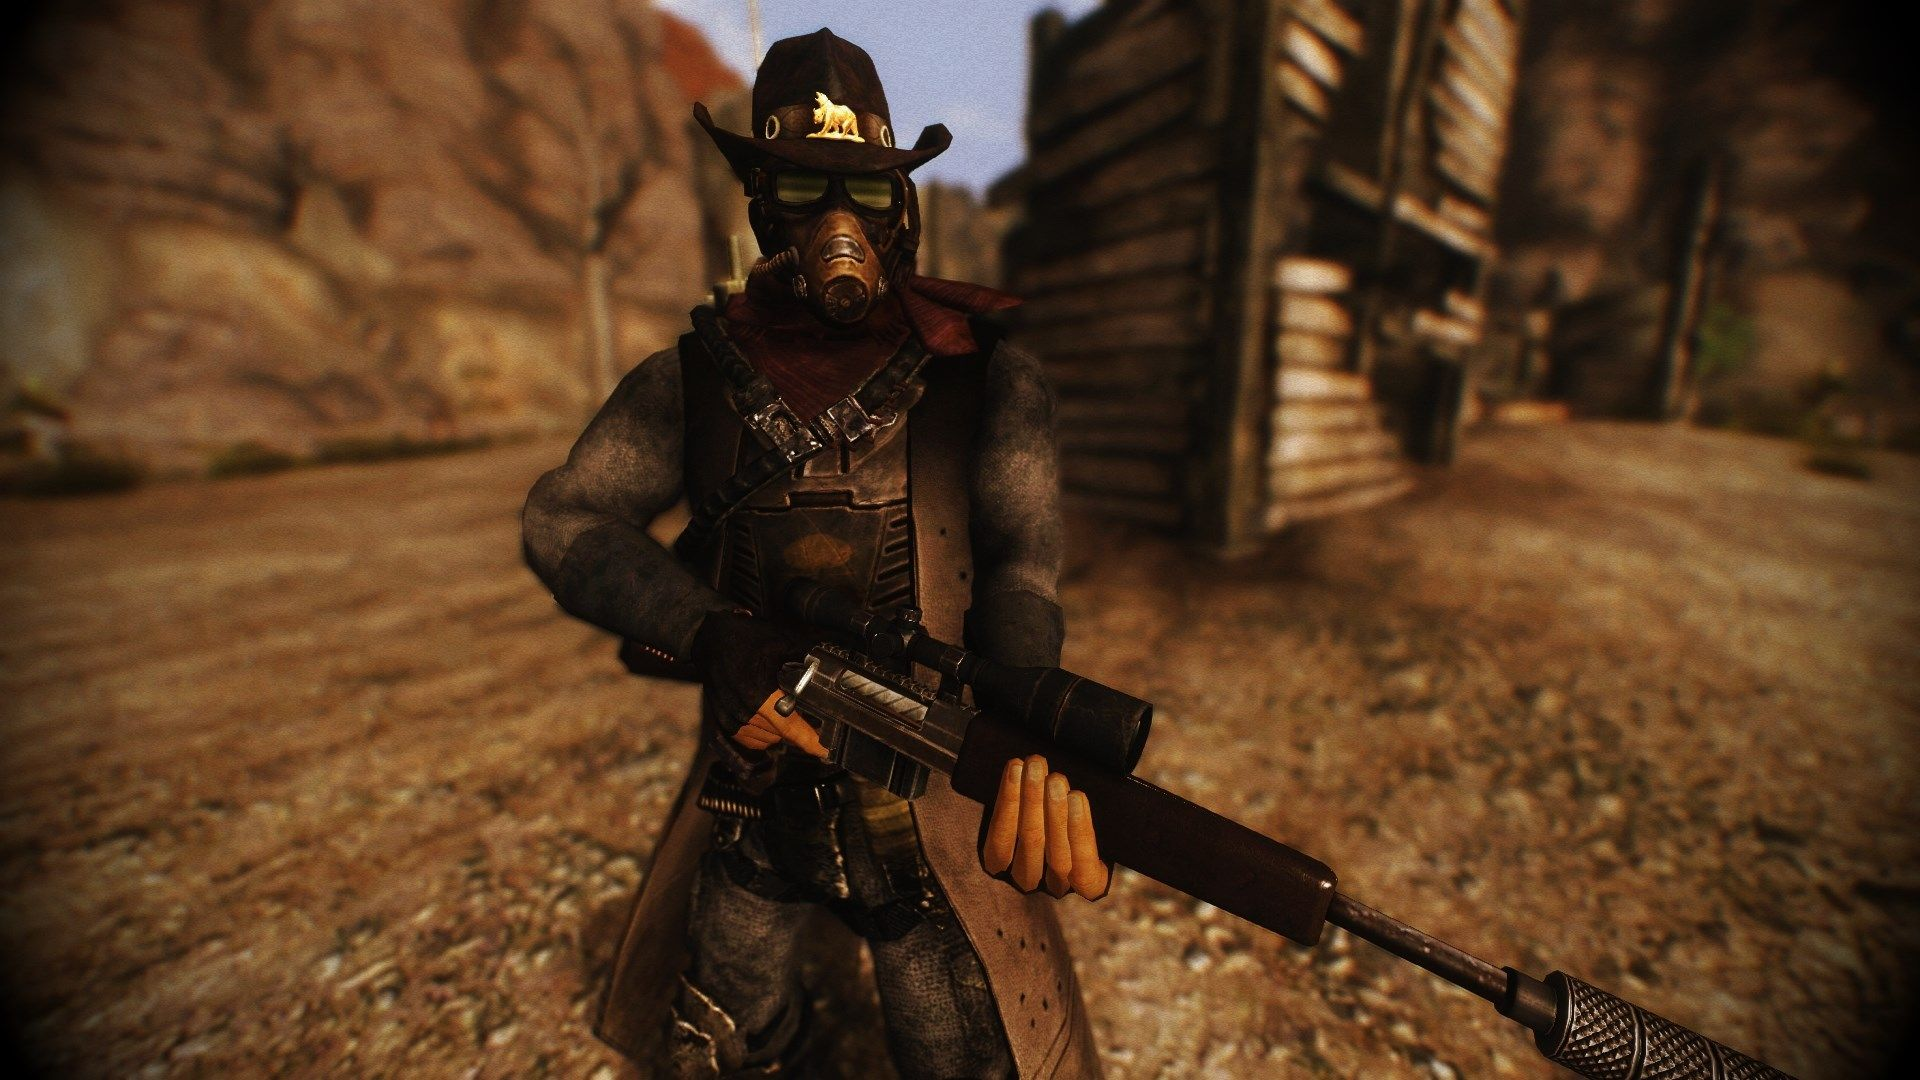 fallout new vegas wallpaper hd pictures to pin on pinterest